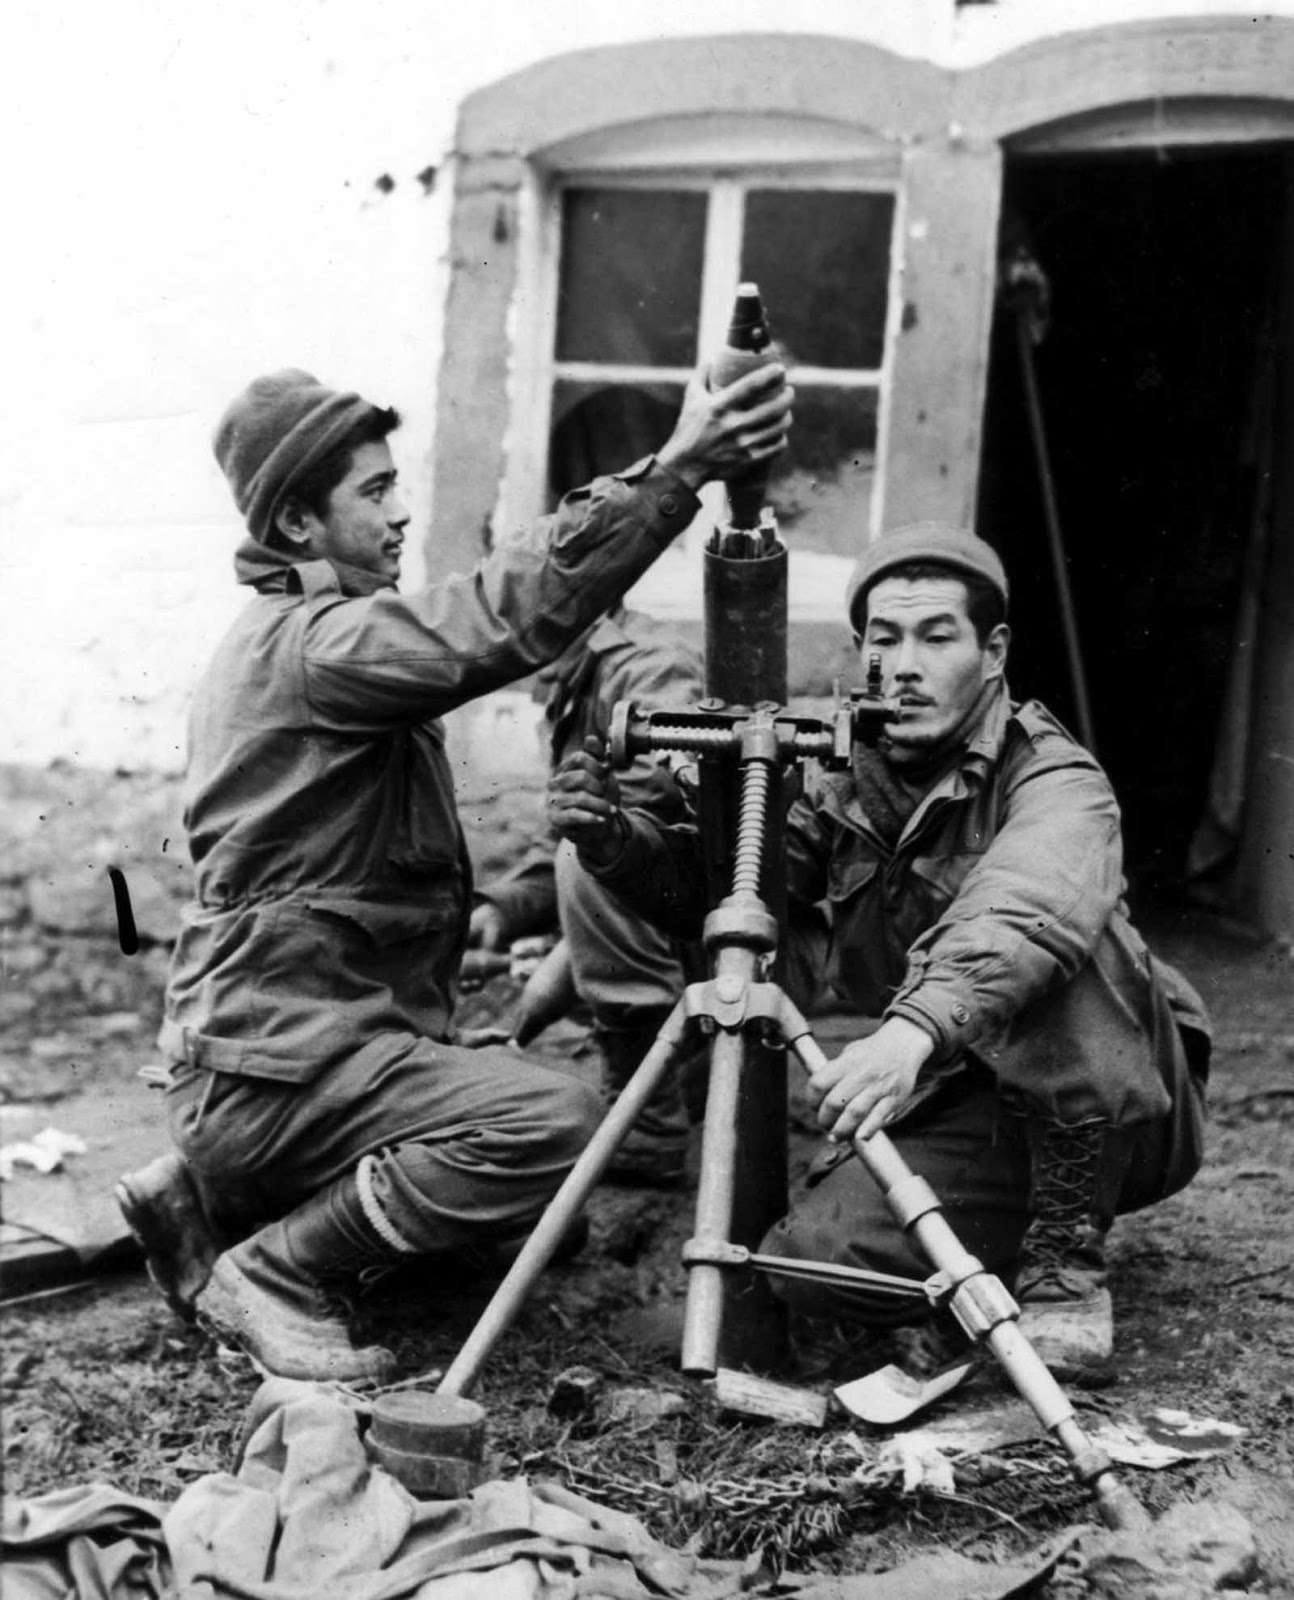 Soldiers fire mortar shells at German troops in France. Oct. 1, 1944.